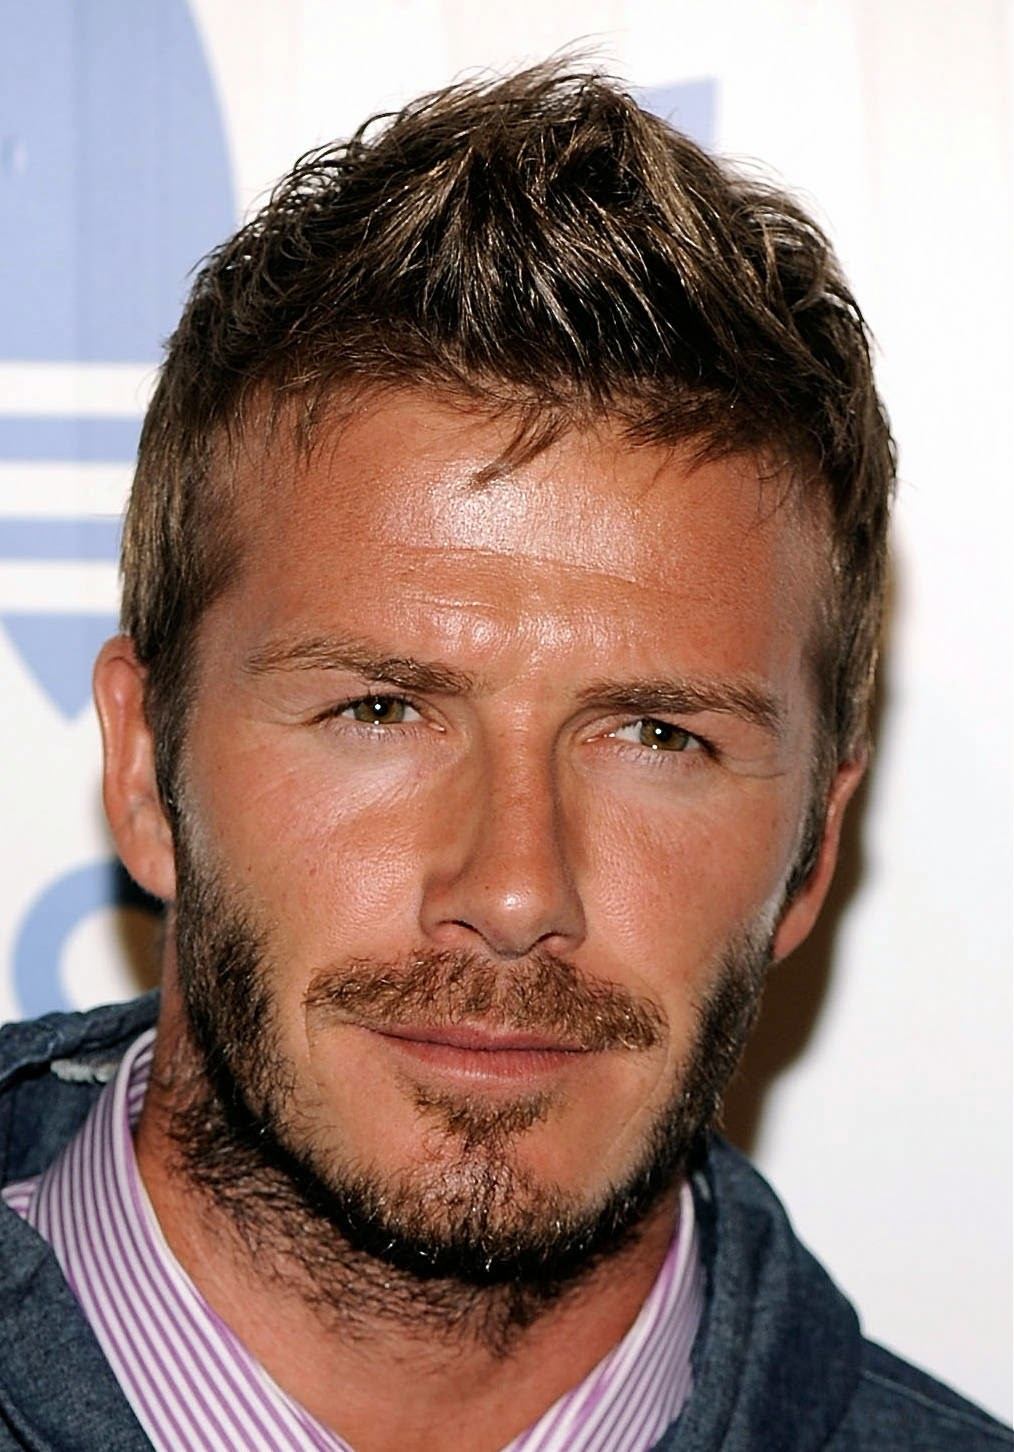 Cool Guy Haircuts 2014 Latest mens hairstyle 2014